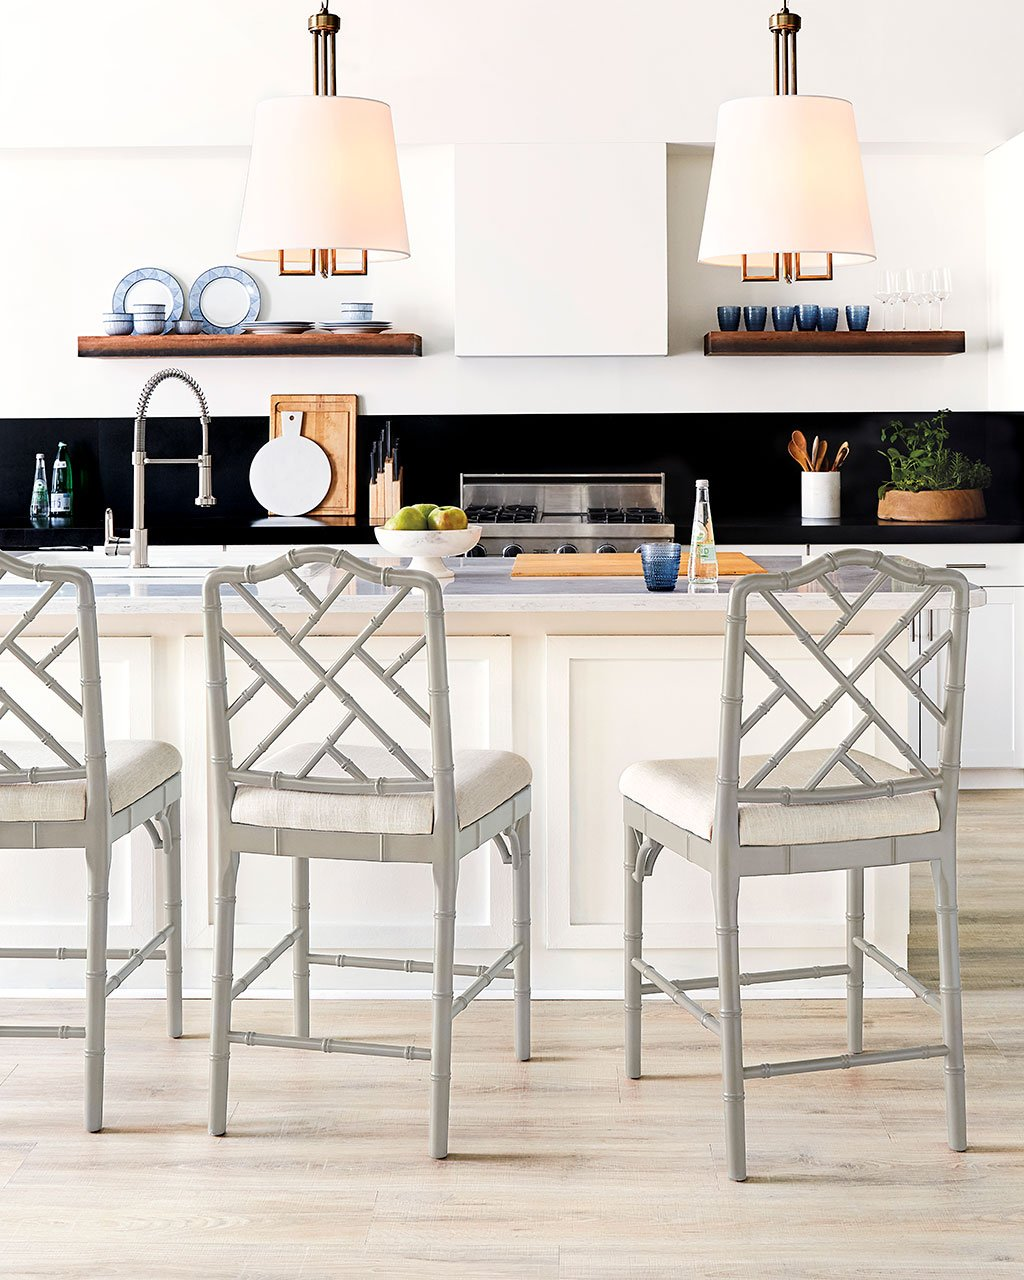 How to Choose the Right Stool Heights for Your Kitchen